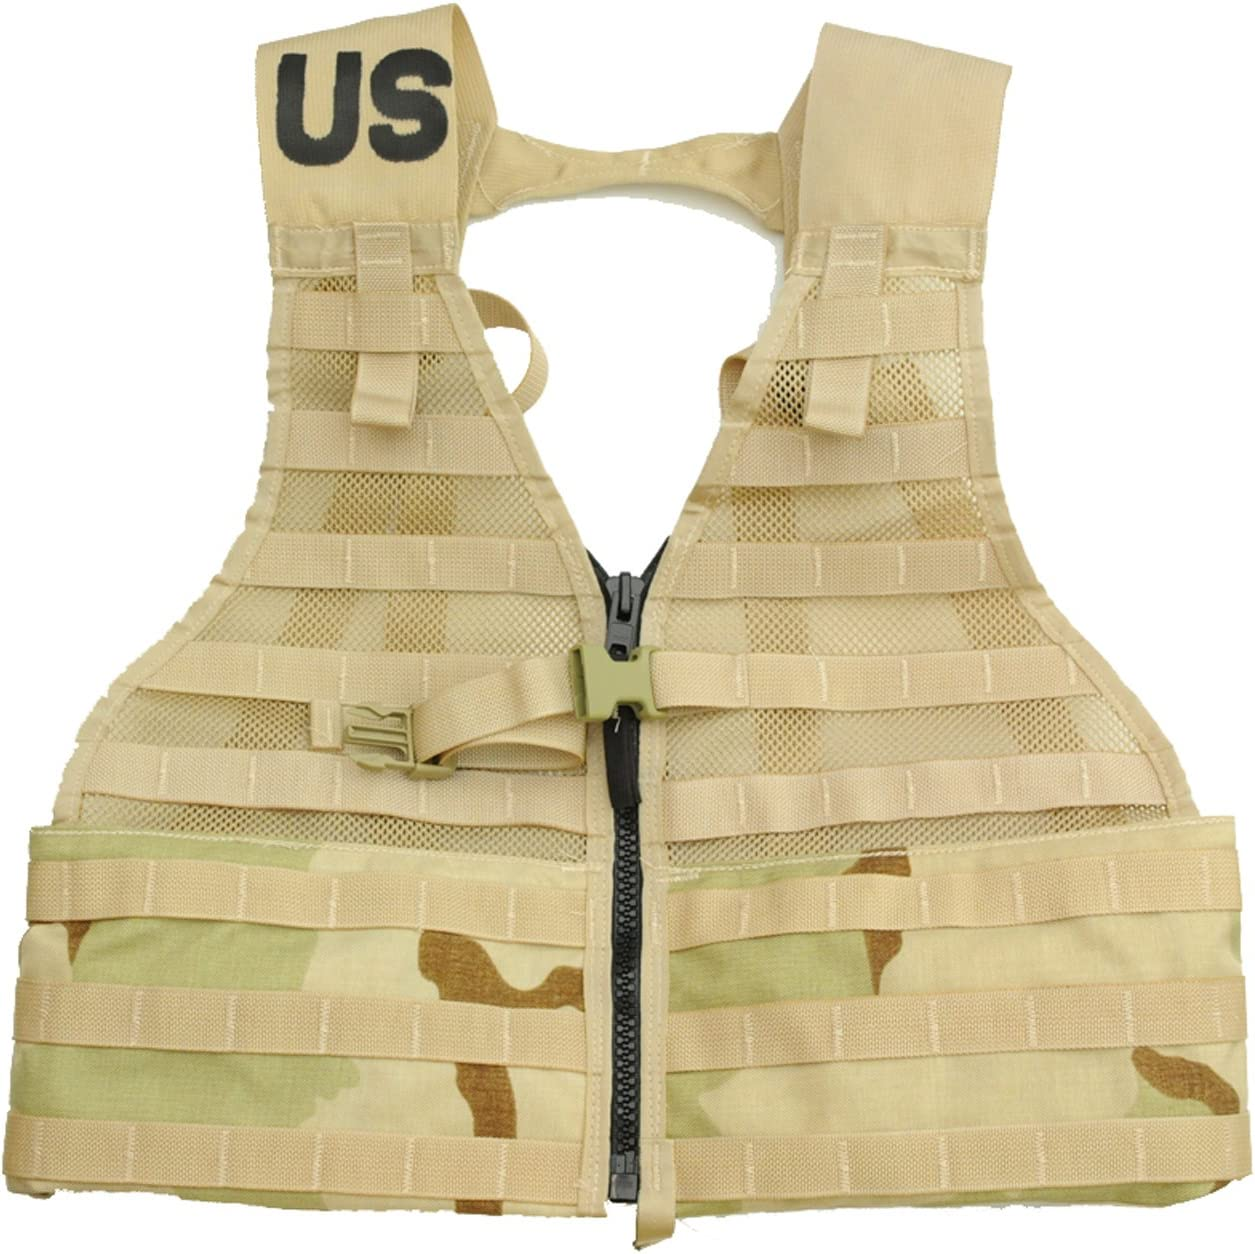 Military Outdoor Clothing Never Issued U.S. G.I. 3-Color Desert MOLLE II Fighting Load Carrier (FLC) Vest